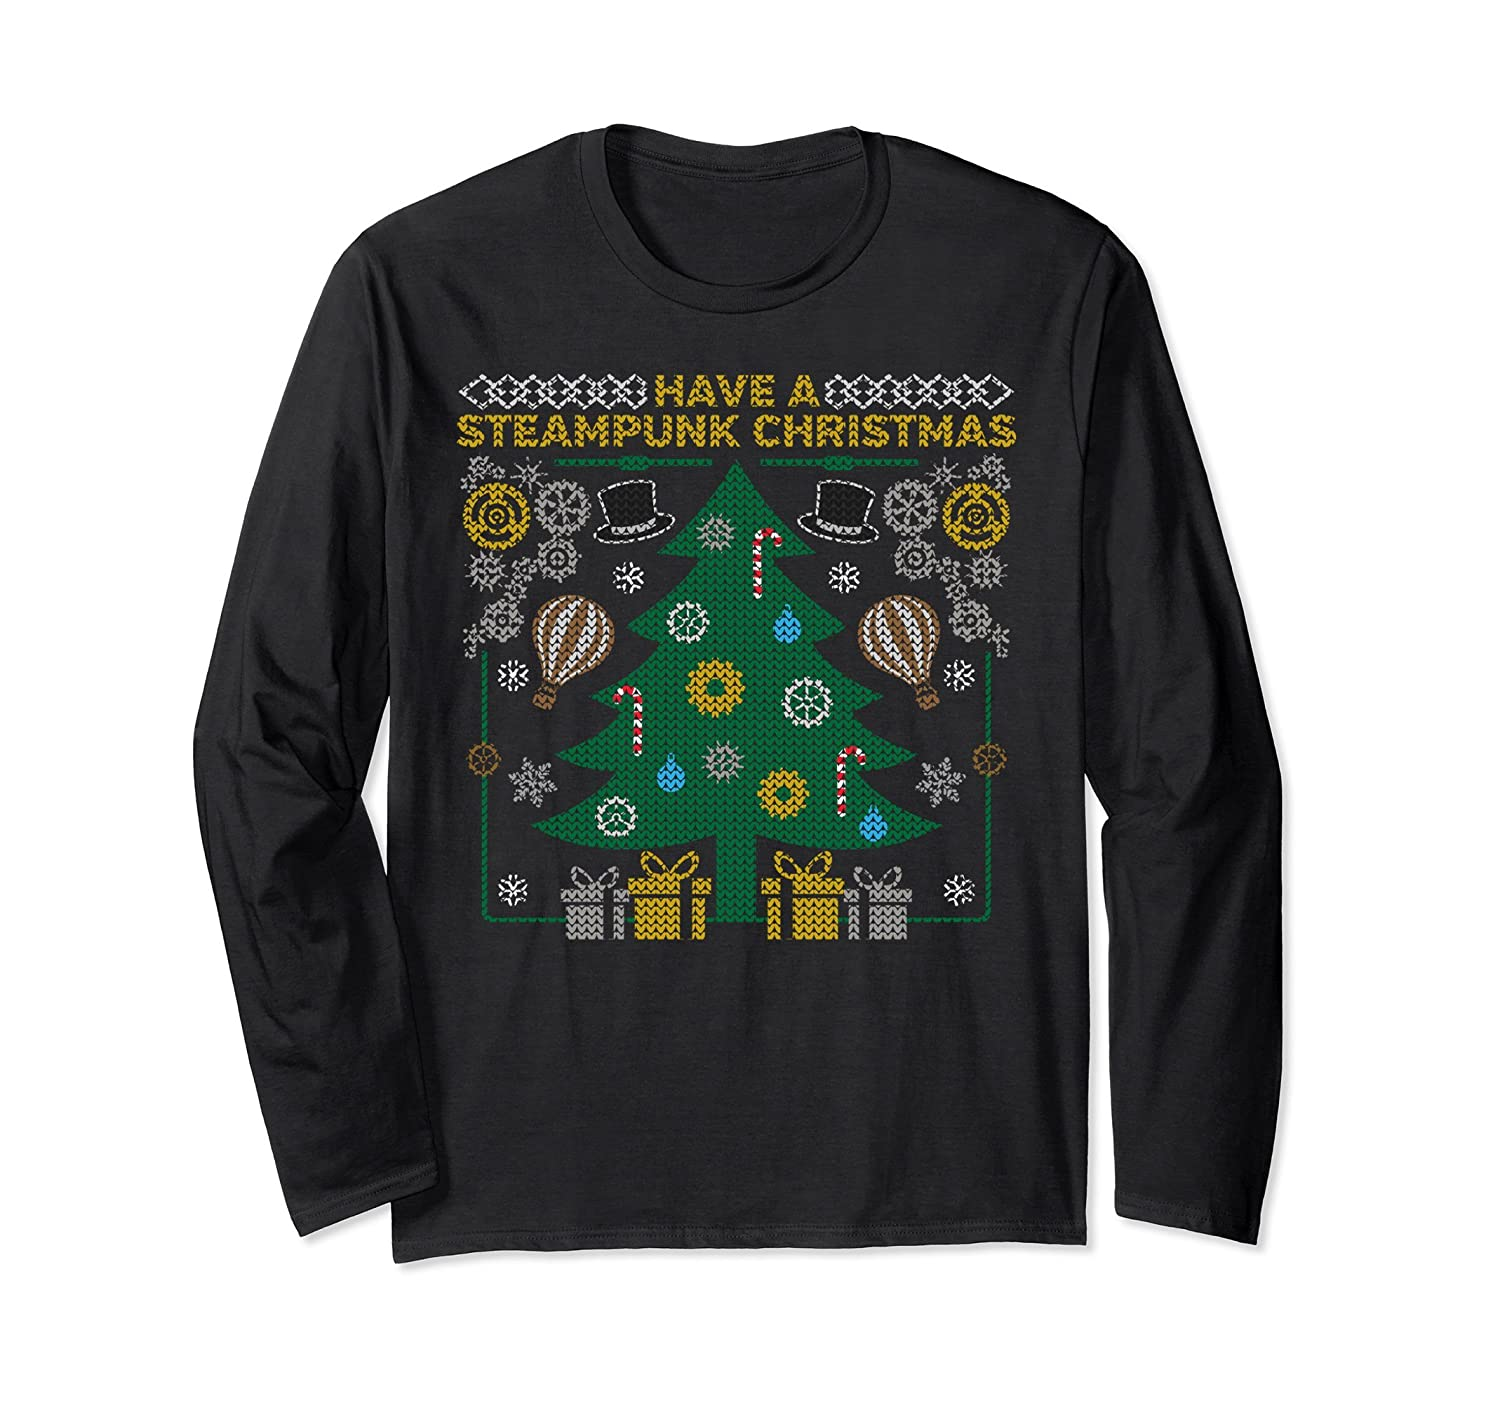 Steampunk Tree Tacky Xmas Sweater Long-Sleeve T-Shirt Gears